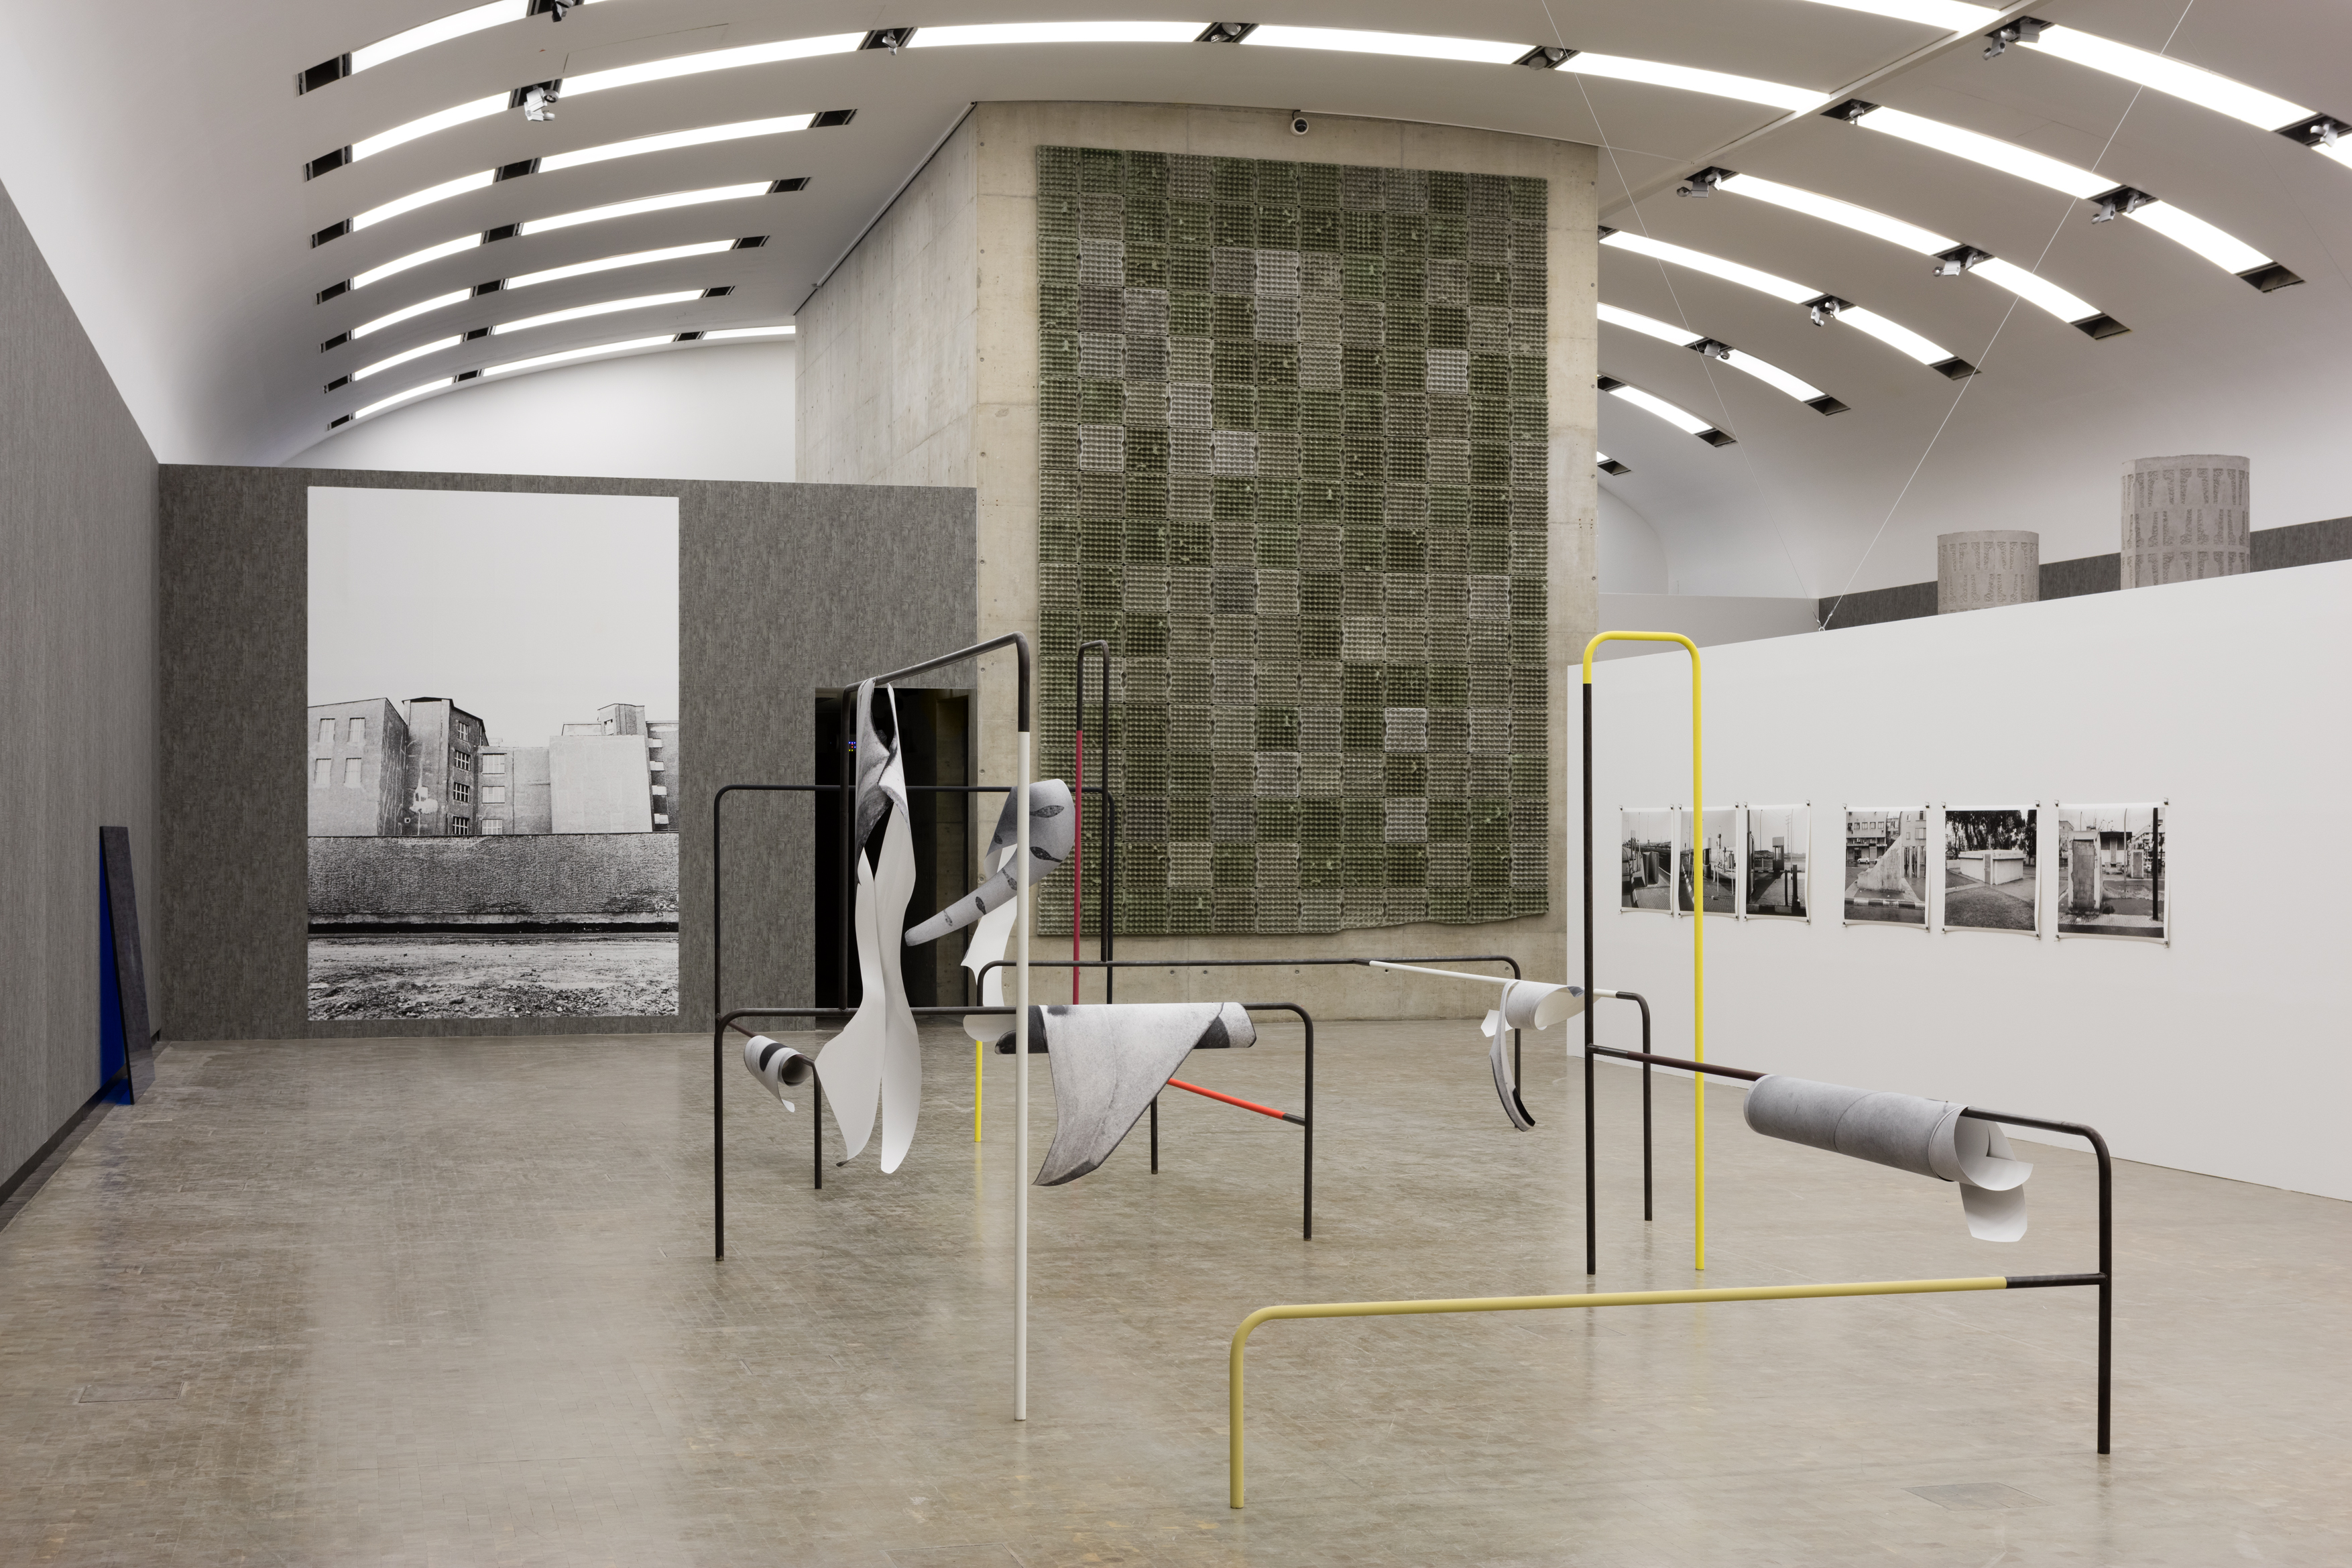 Image: Exhibition view, Béton, Kunsthalle Wien 2016. Photo: Stephan Wyckoff.